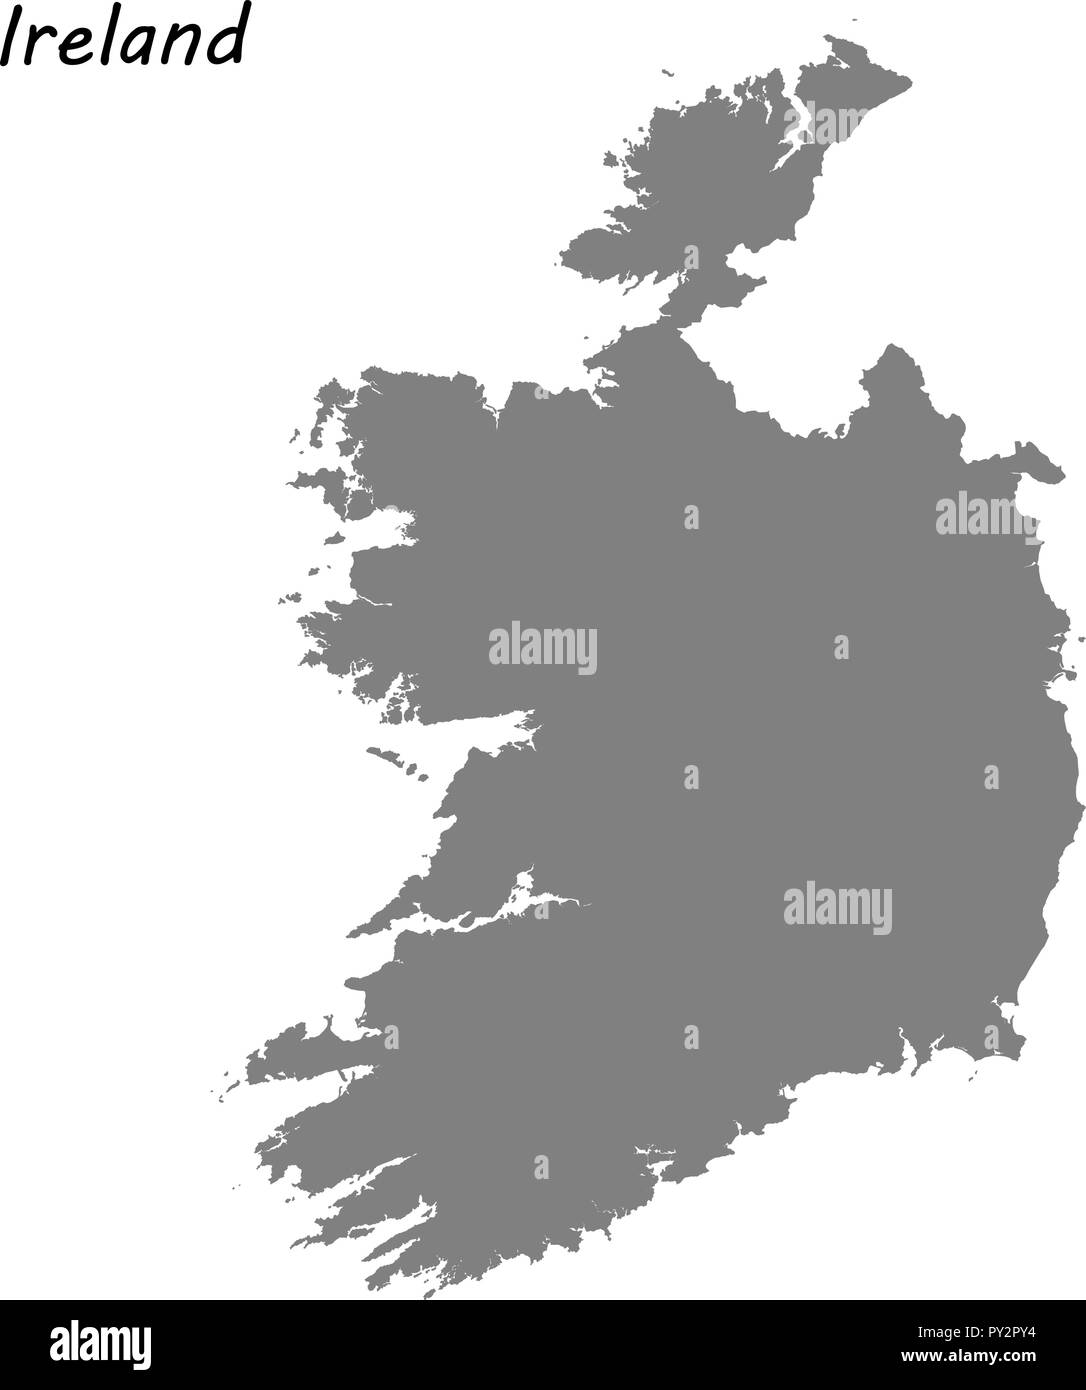 High Quality Map Of Ireland.High Quality Map Of Ireland Vector Illustration Stock